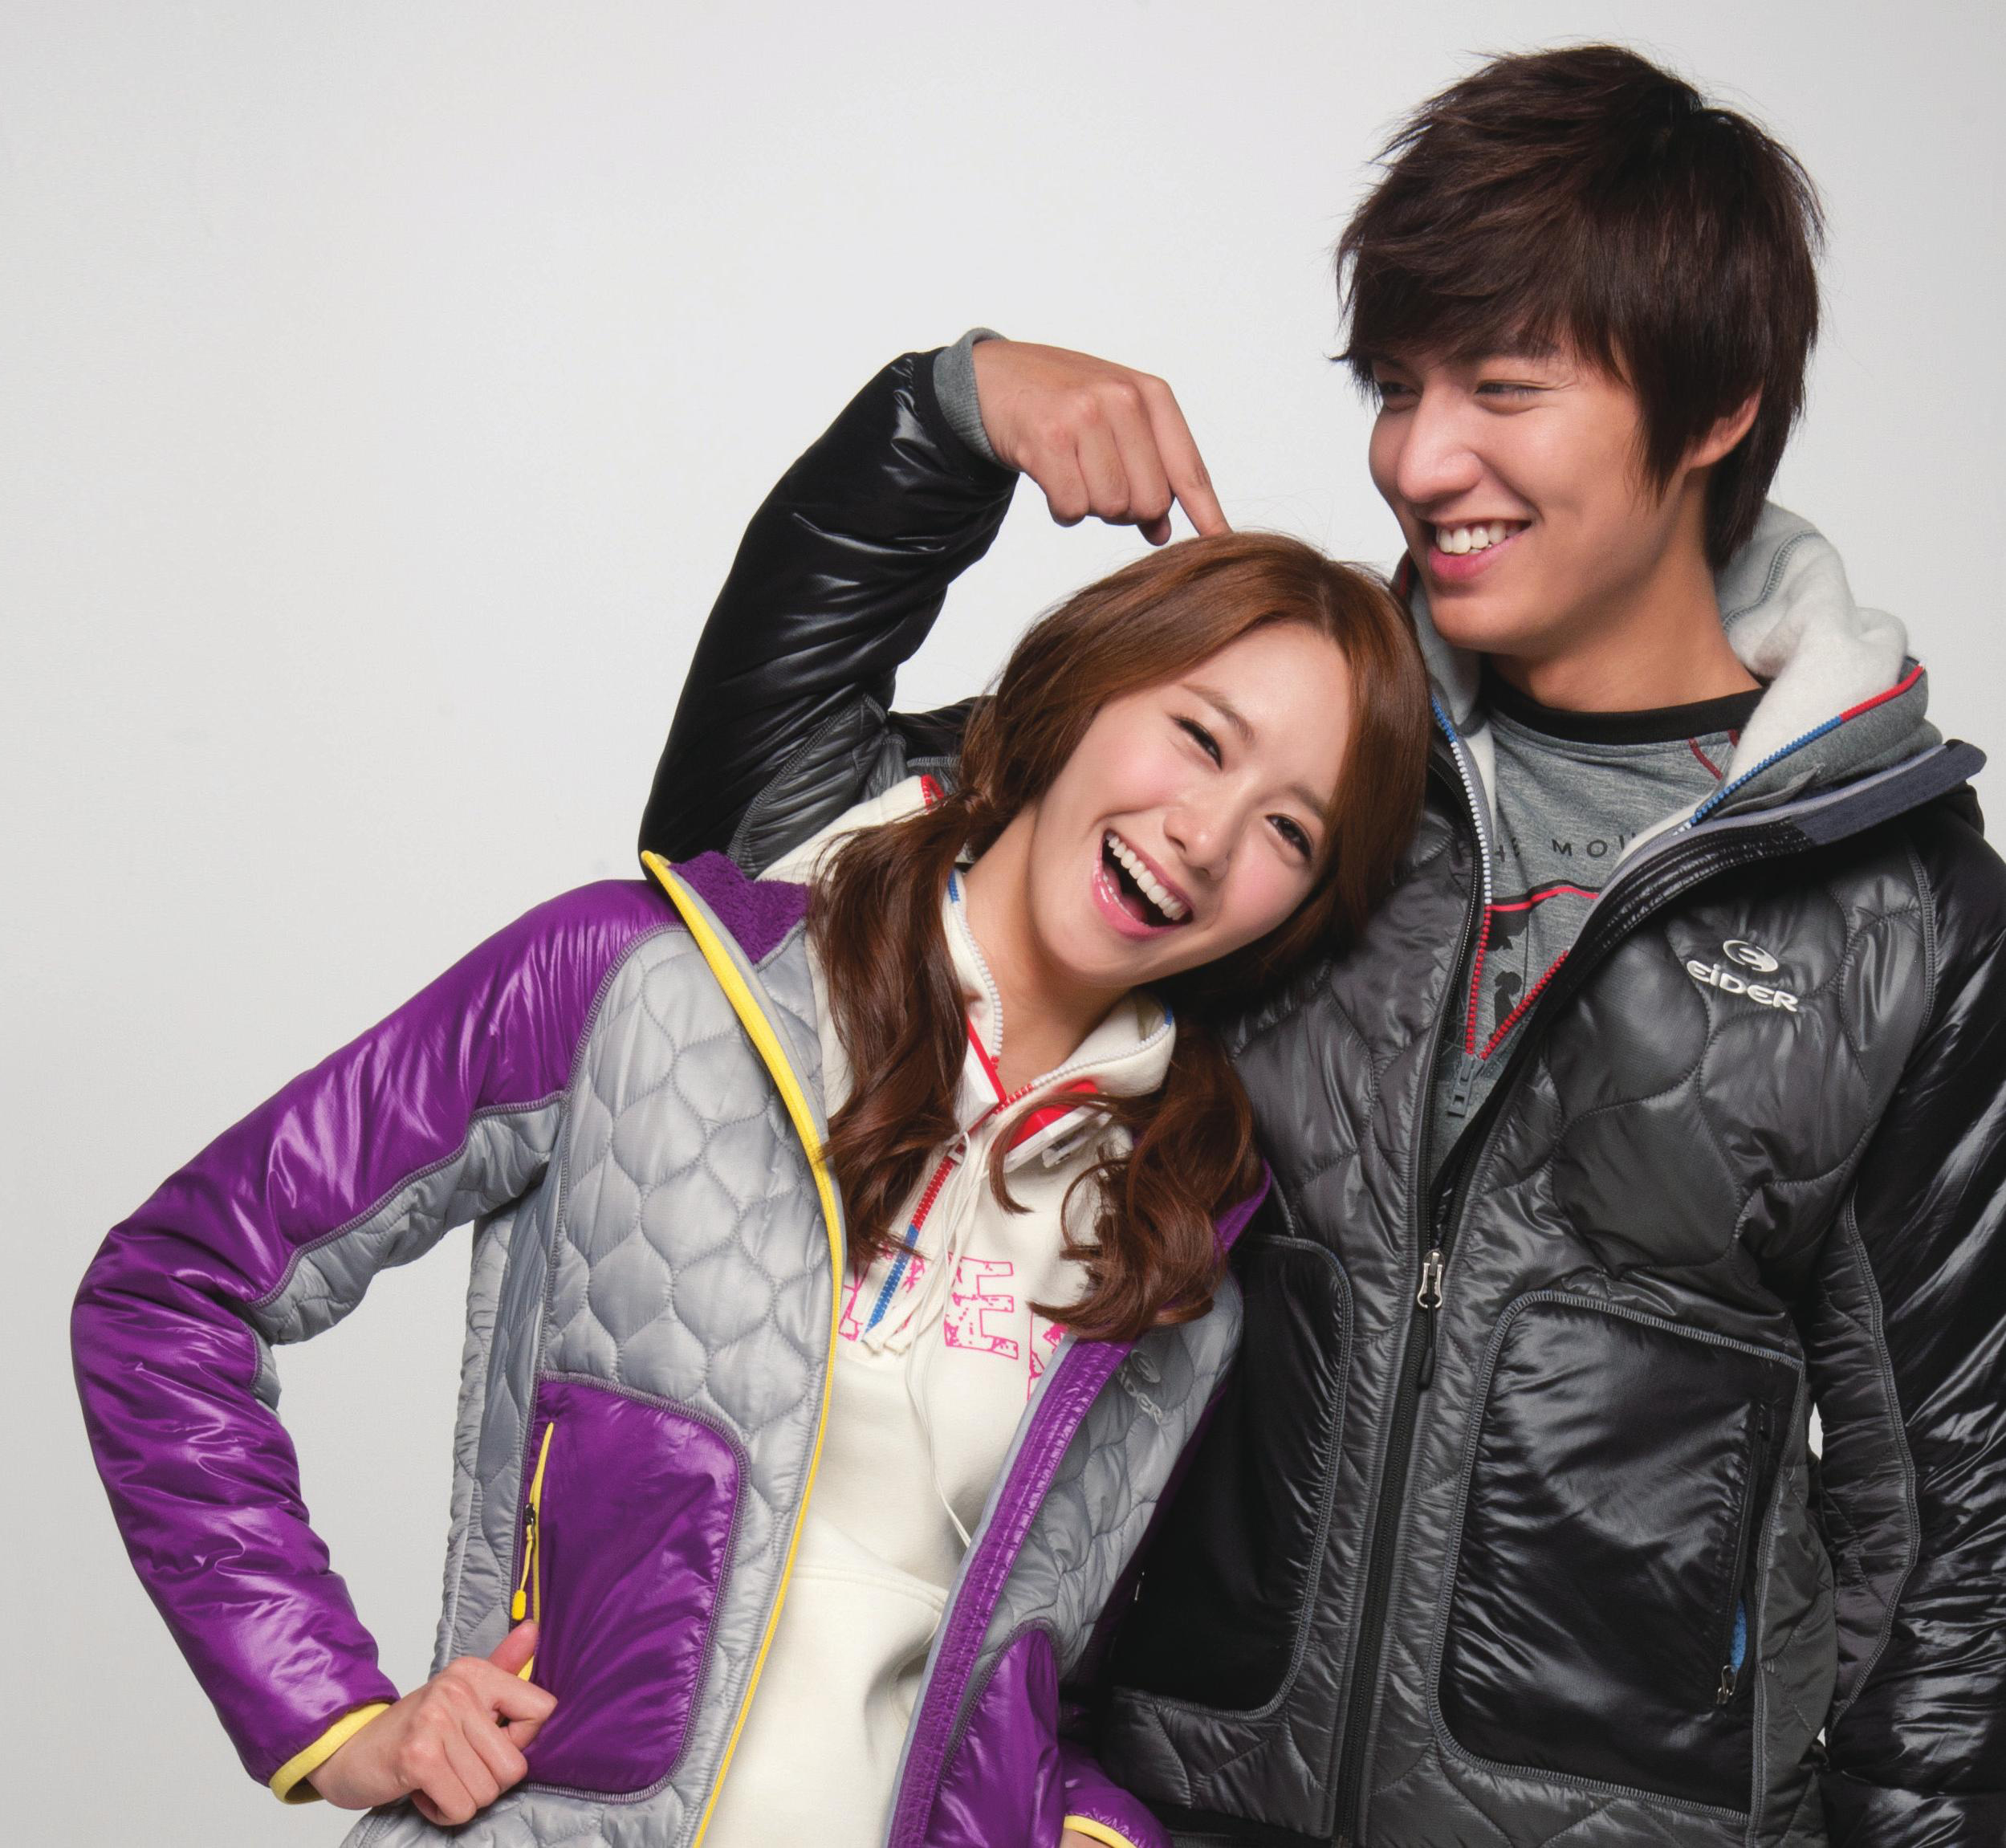 donghae and yoona dating 2013 toyota